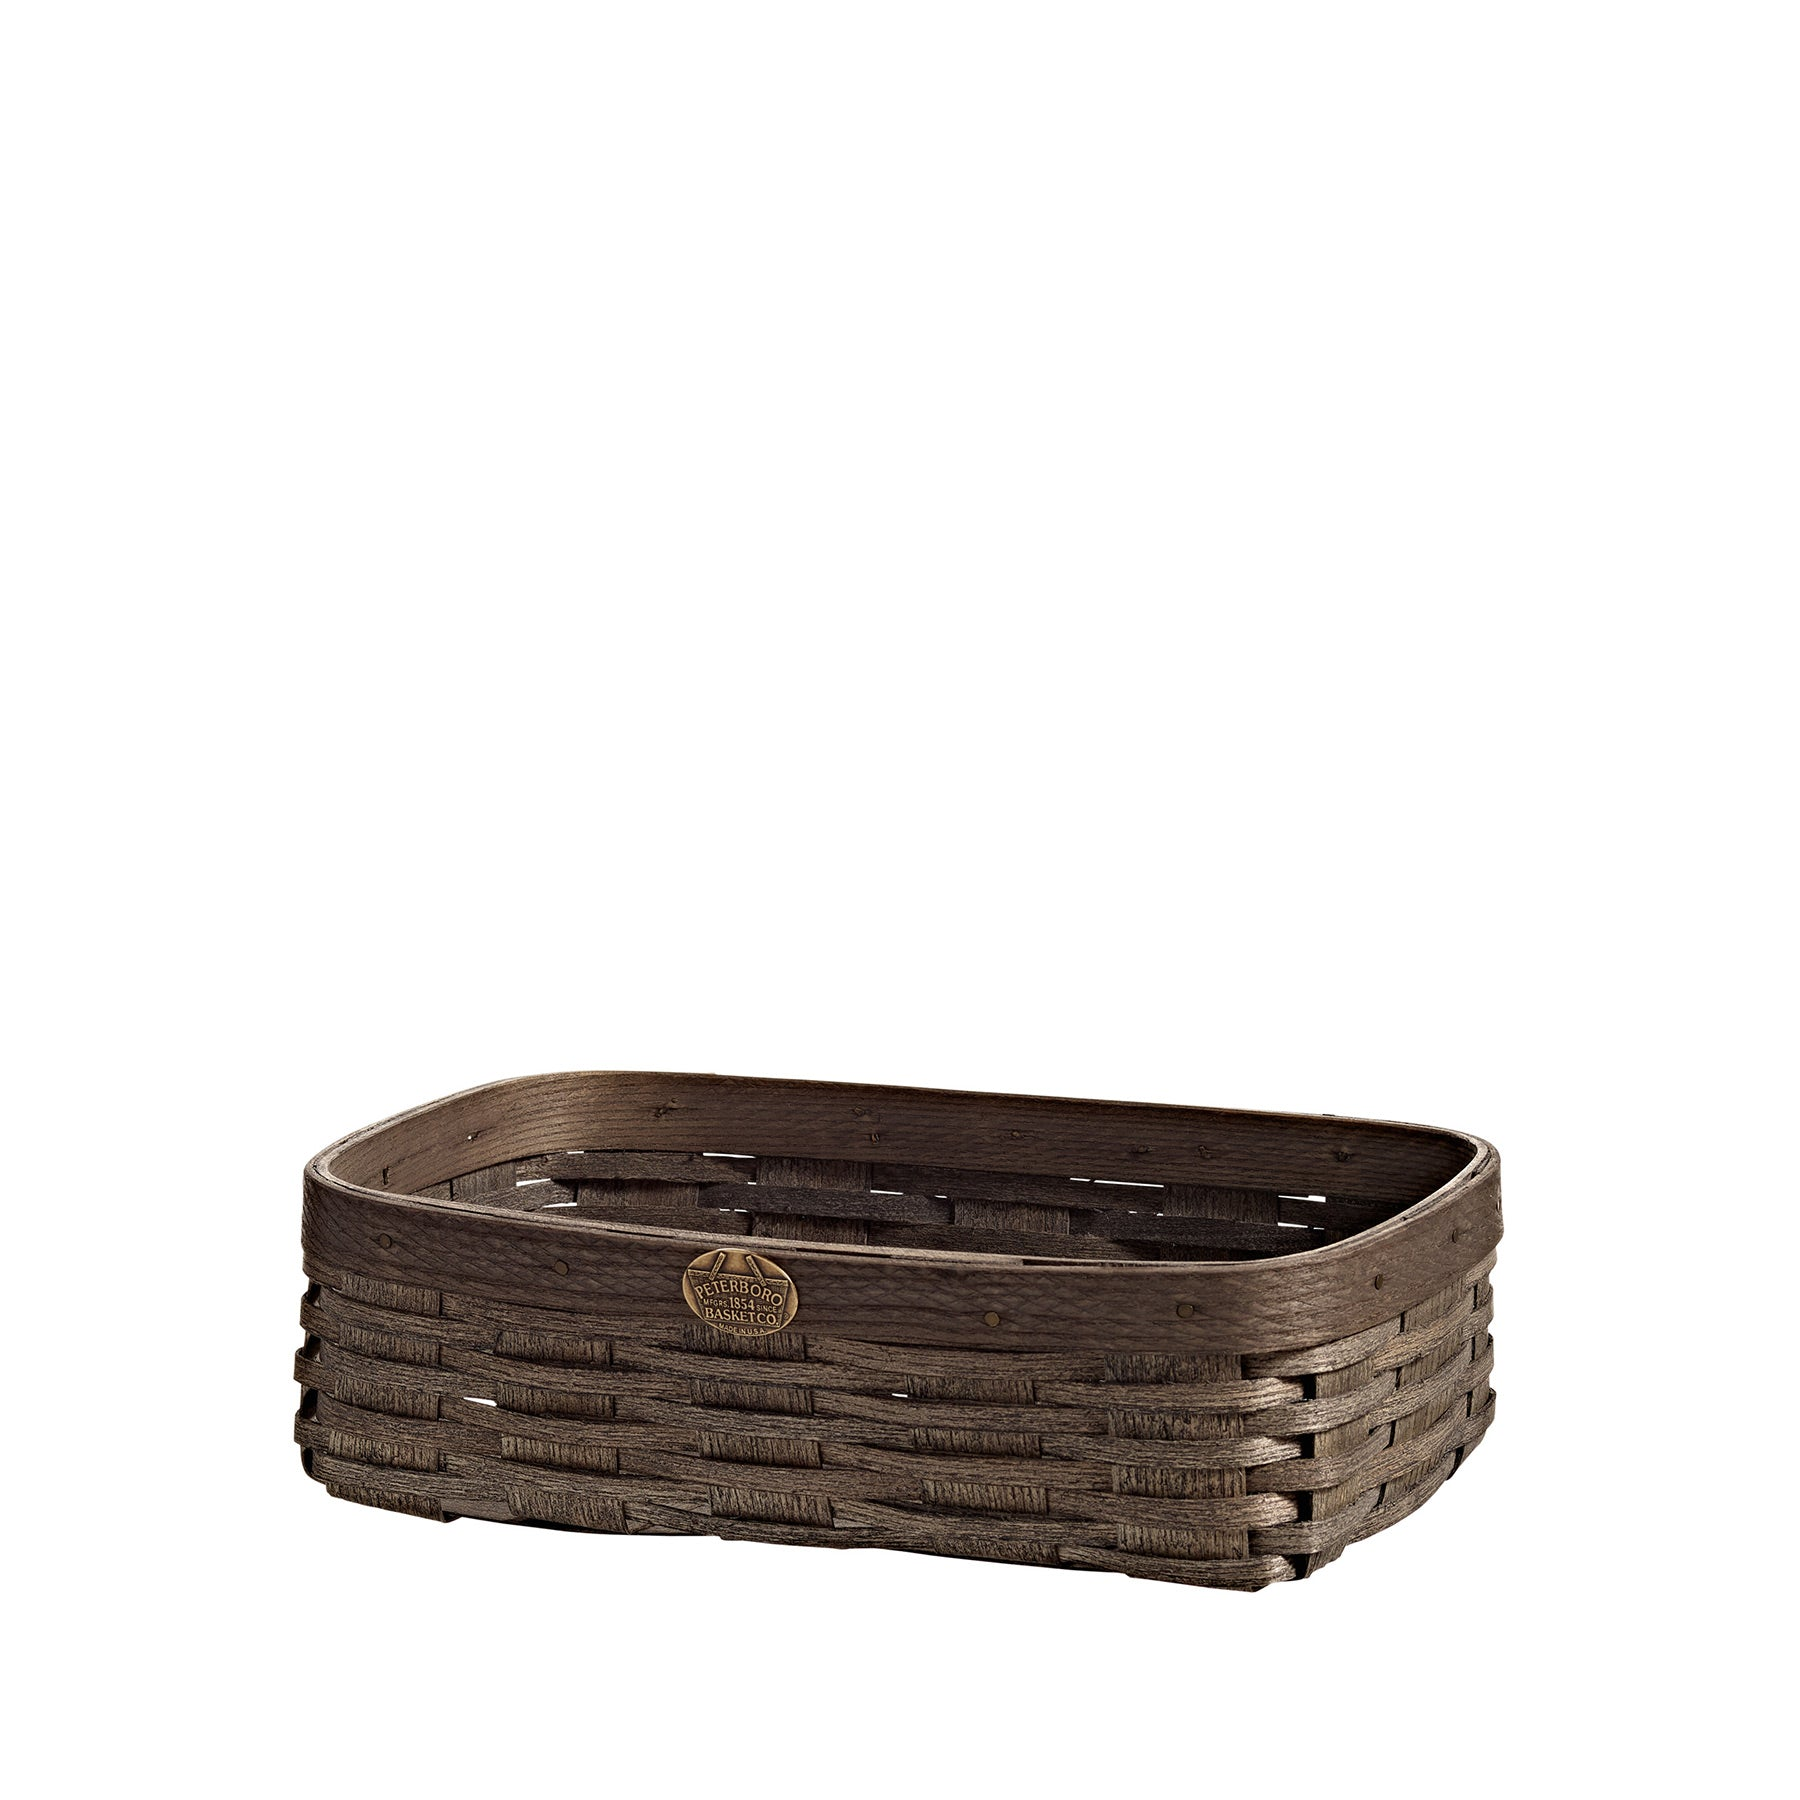 Bread Basket in Driftwood Grey Zoom Image 1